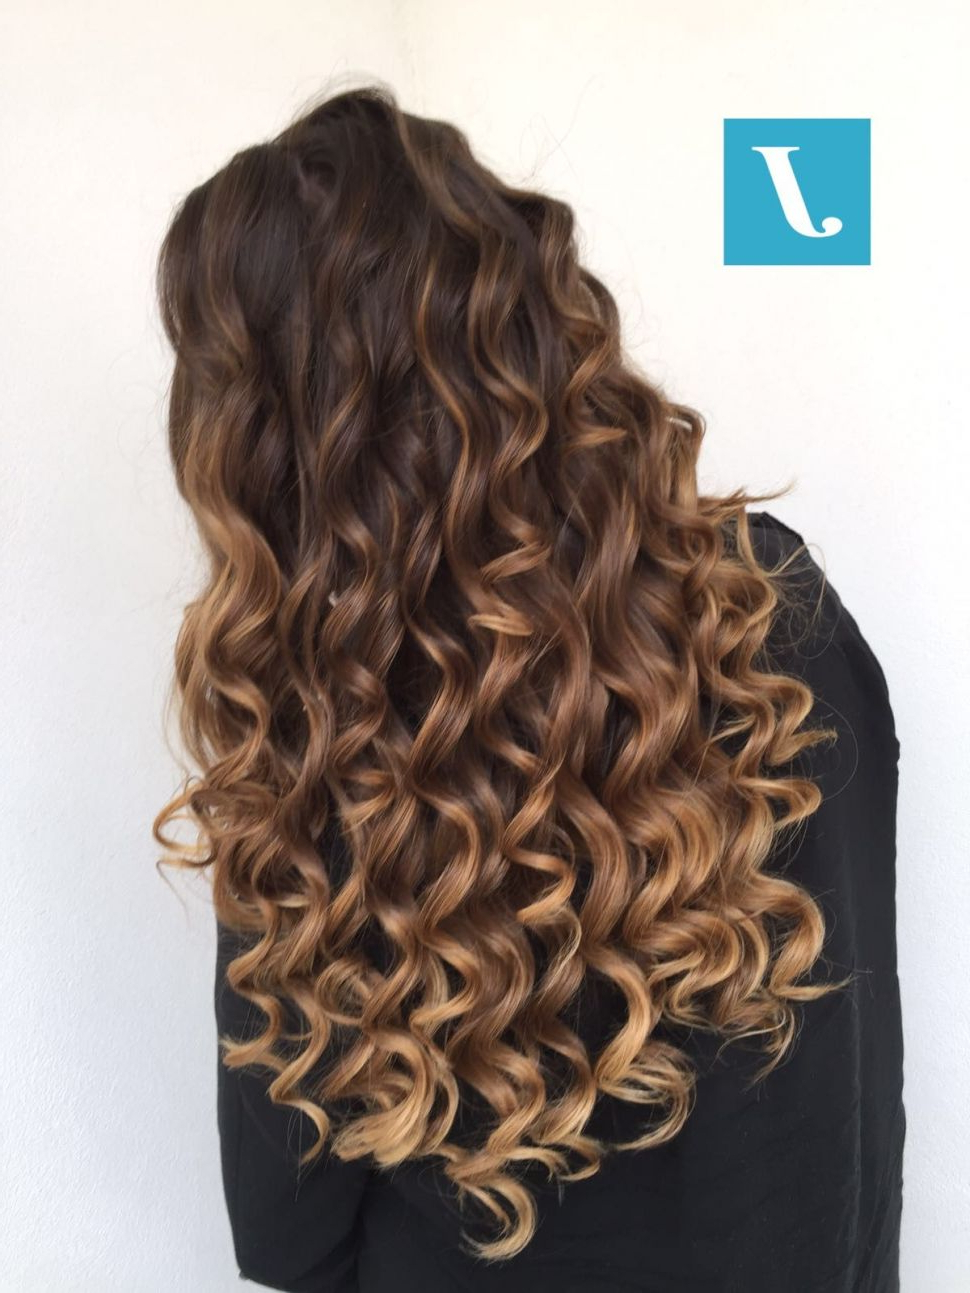 Hairstyles : Pinbrianaaf09f8cb9 On Haire280a2wee280a2go In 2018 Pertaining To Well Known Ravishing Raven Waves Hairstyles (View 10 of 20)